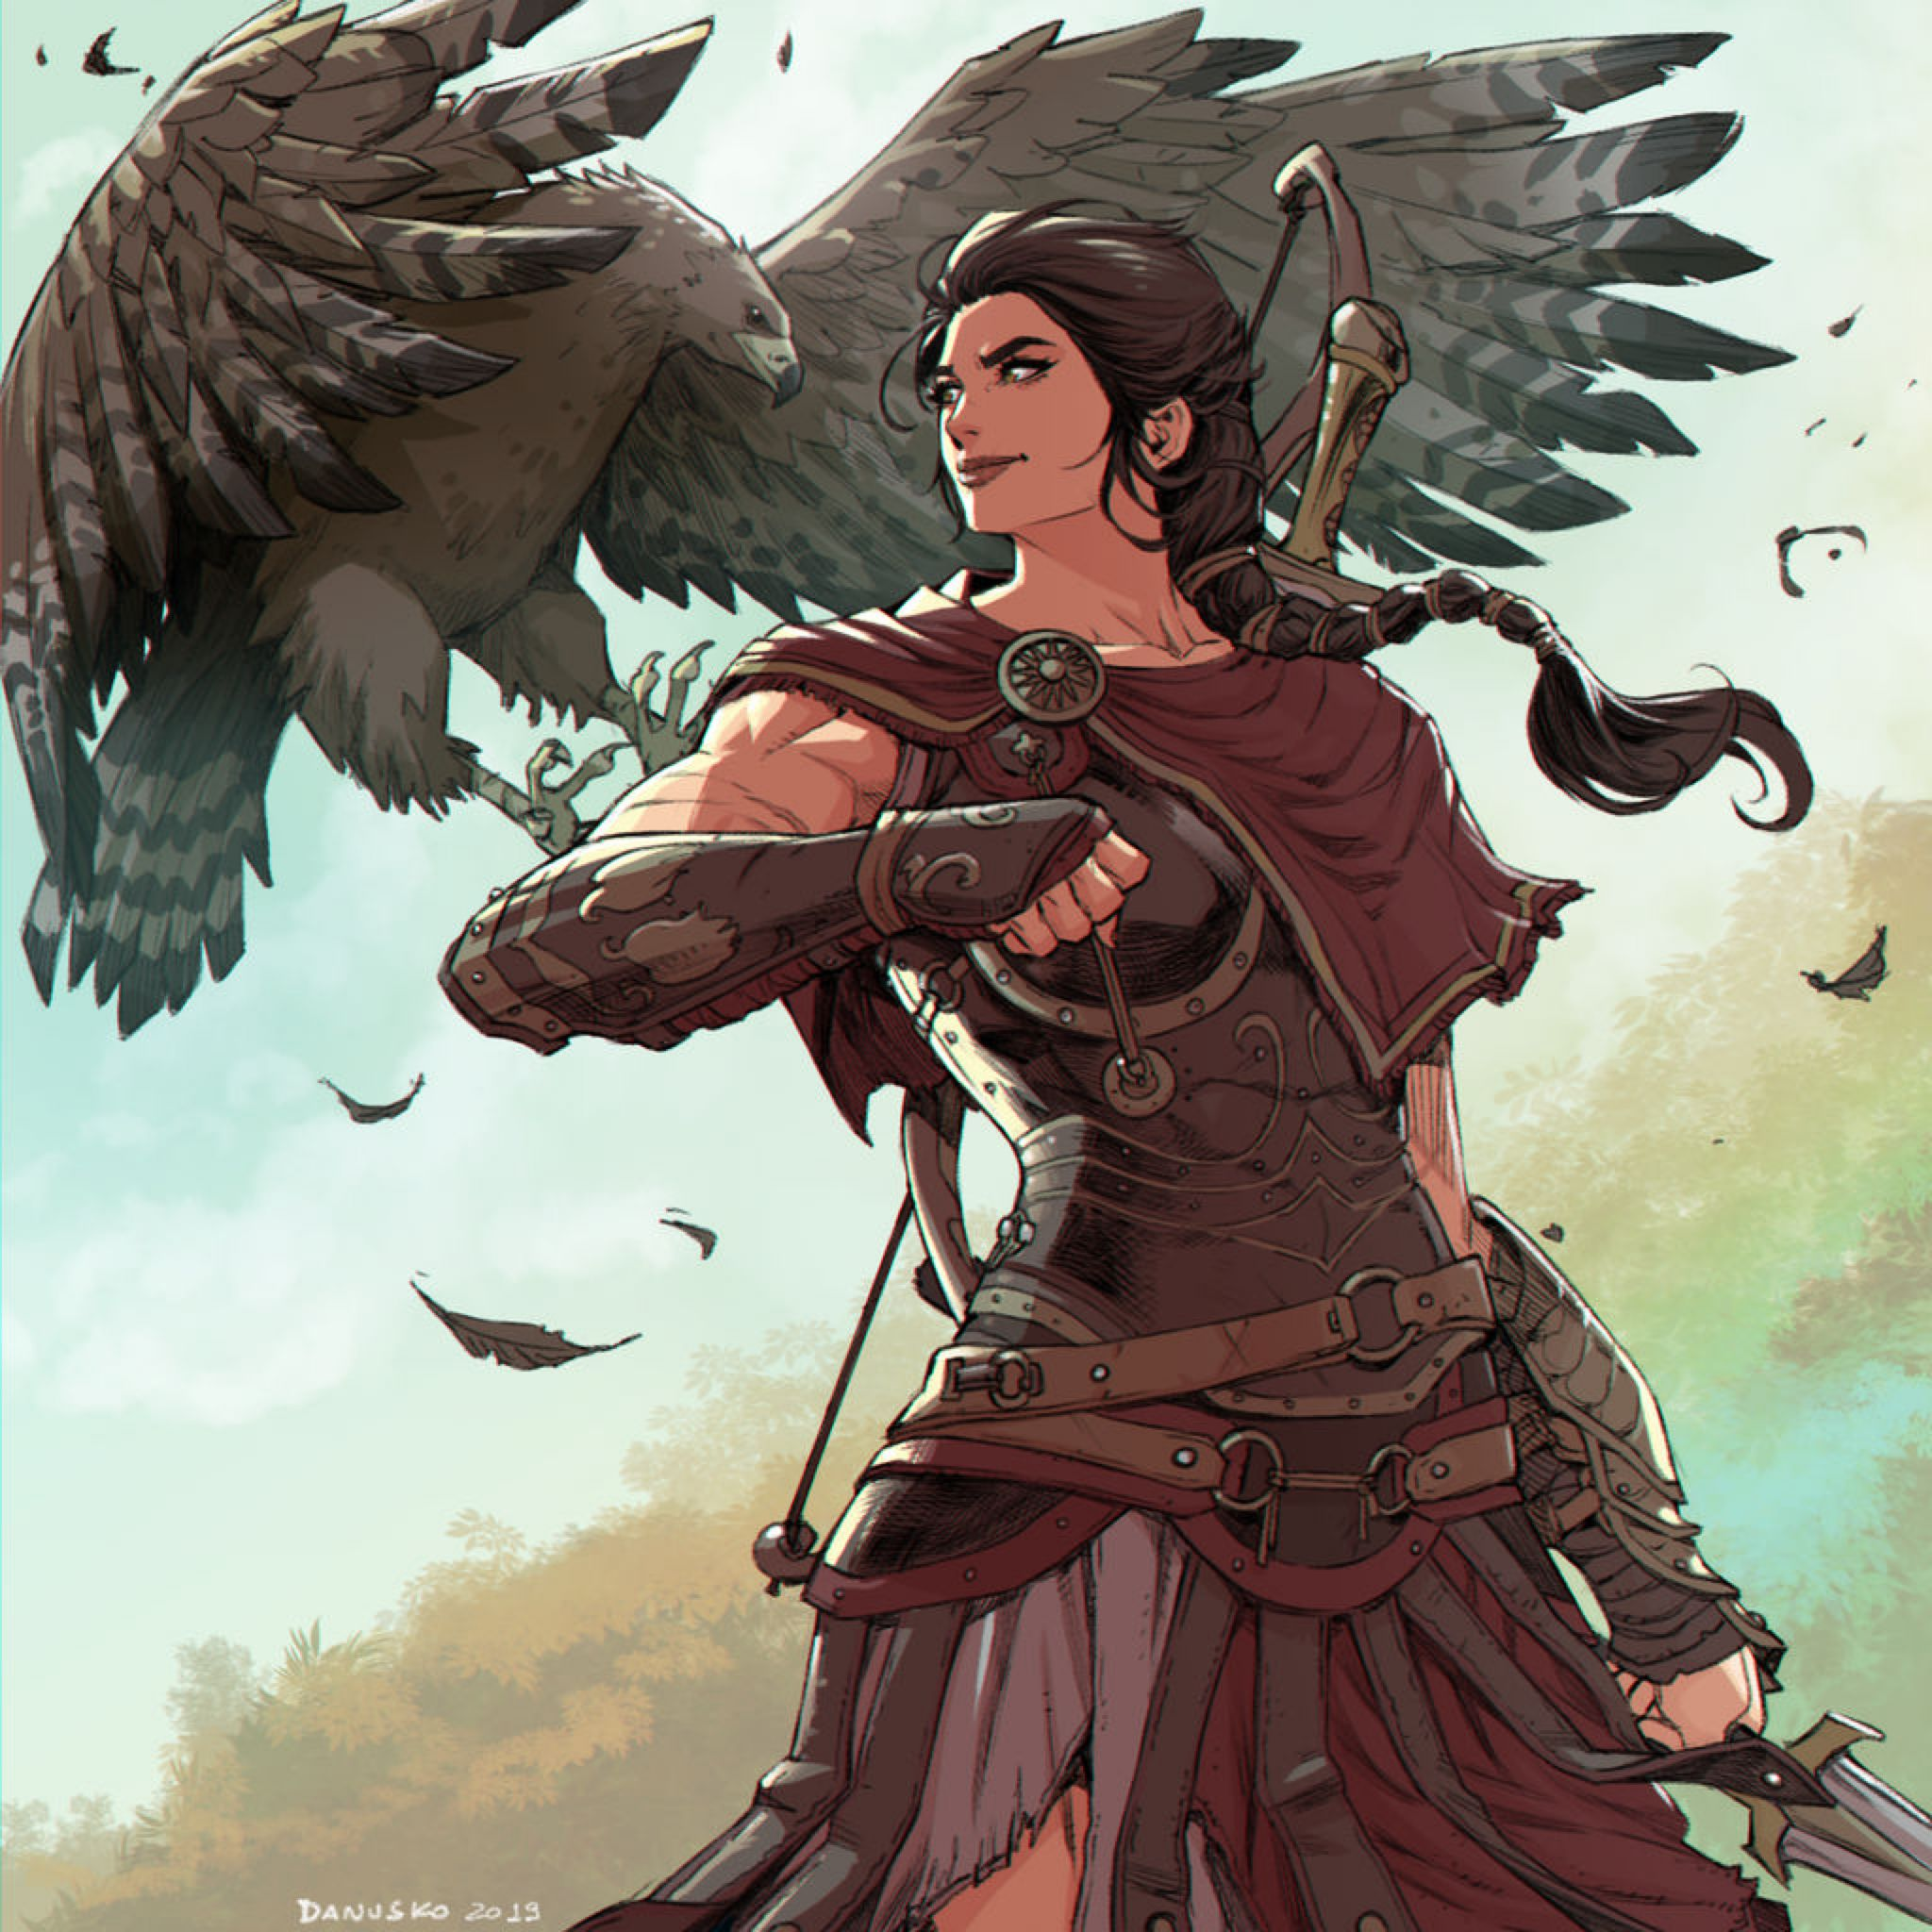 Kassandra Fanart By Danuskoc On Deviantart Assassins Creed Art Character Art Assassins Creed